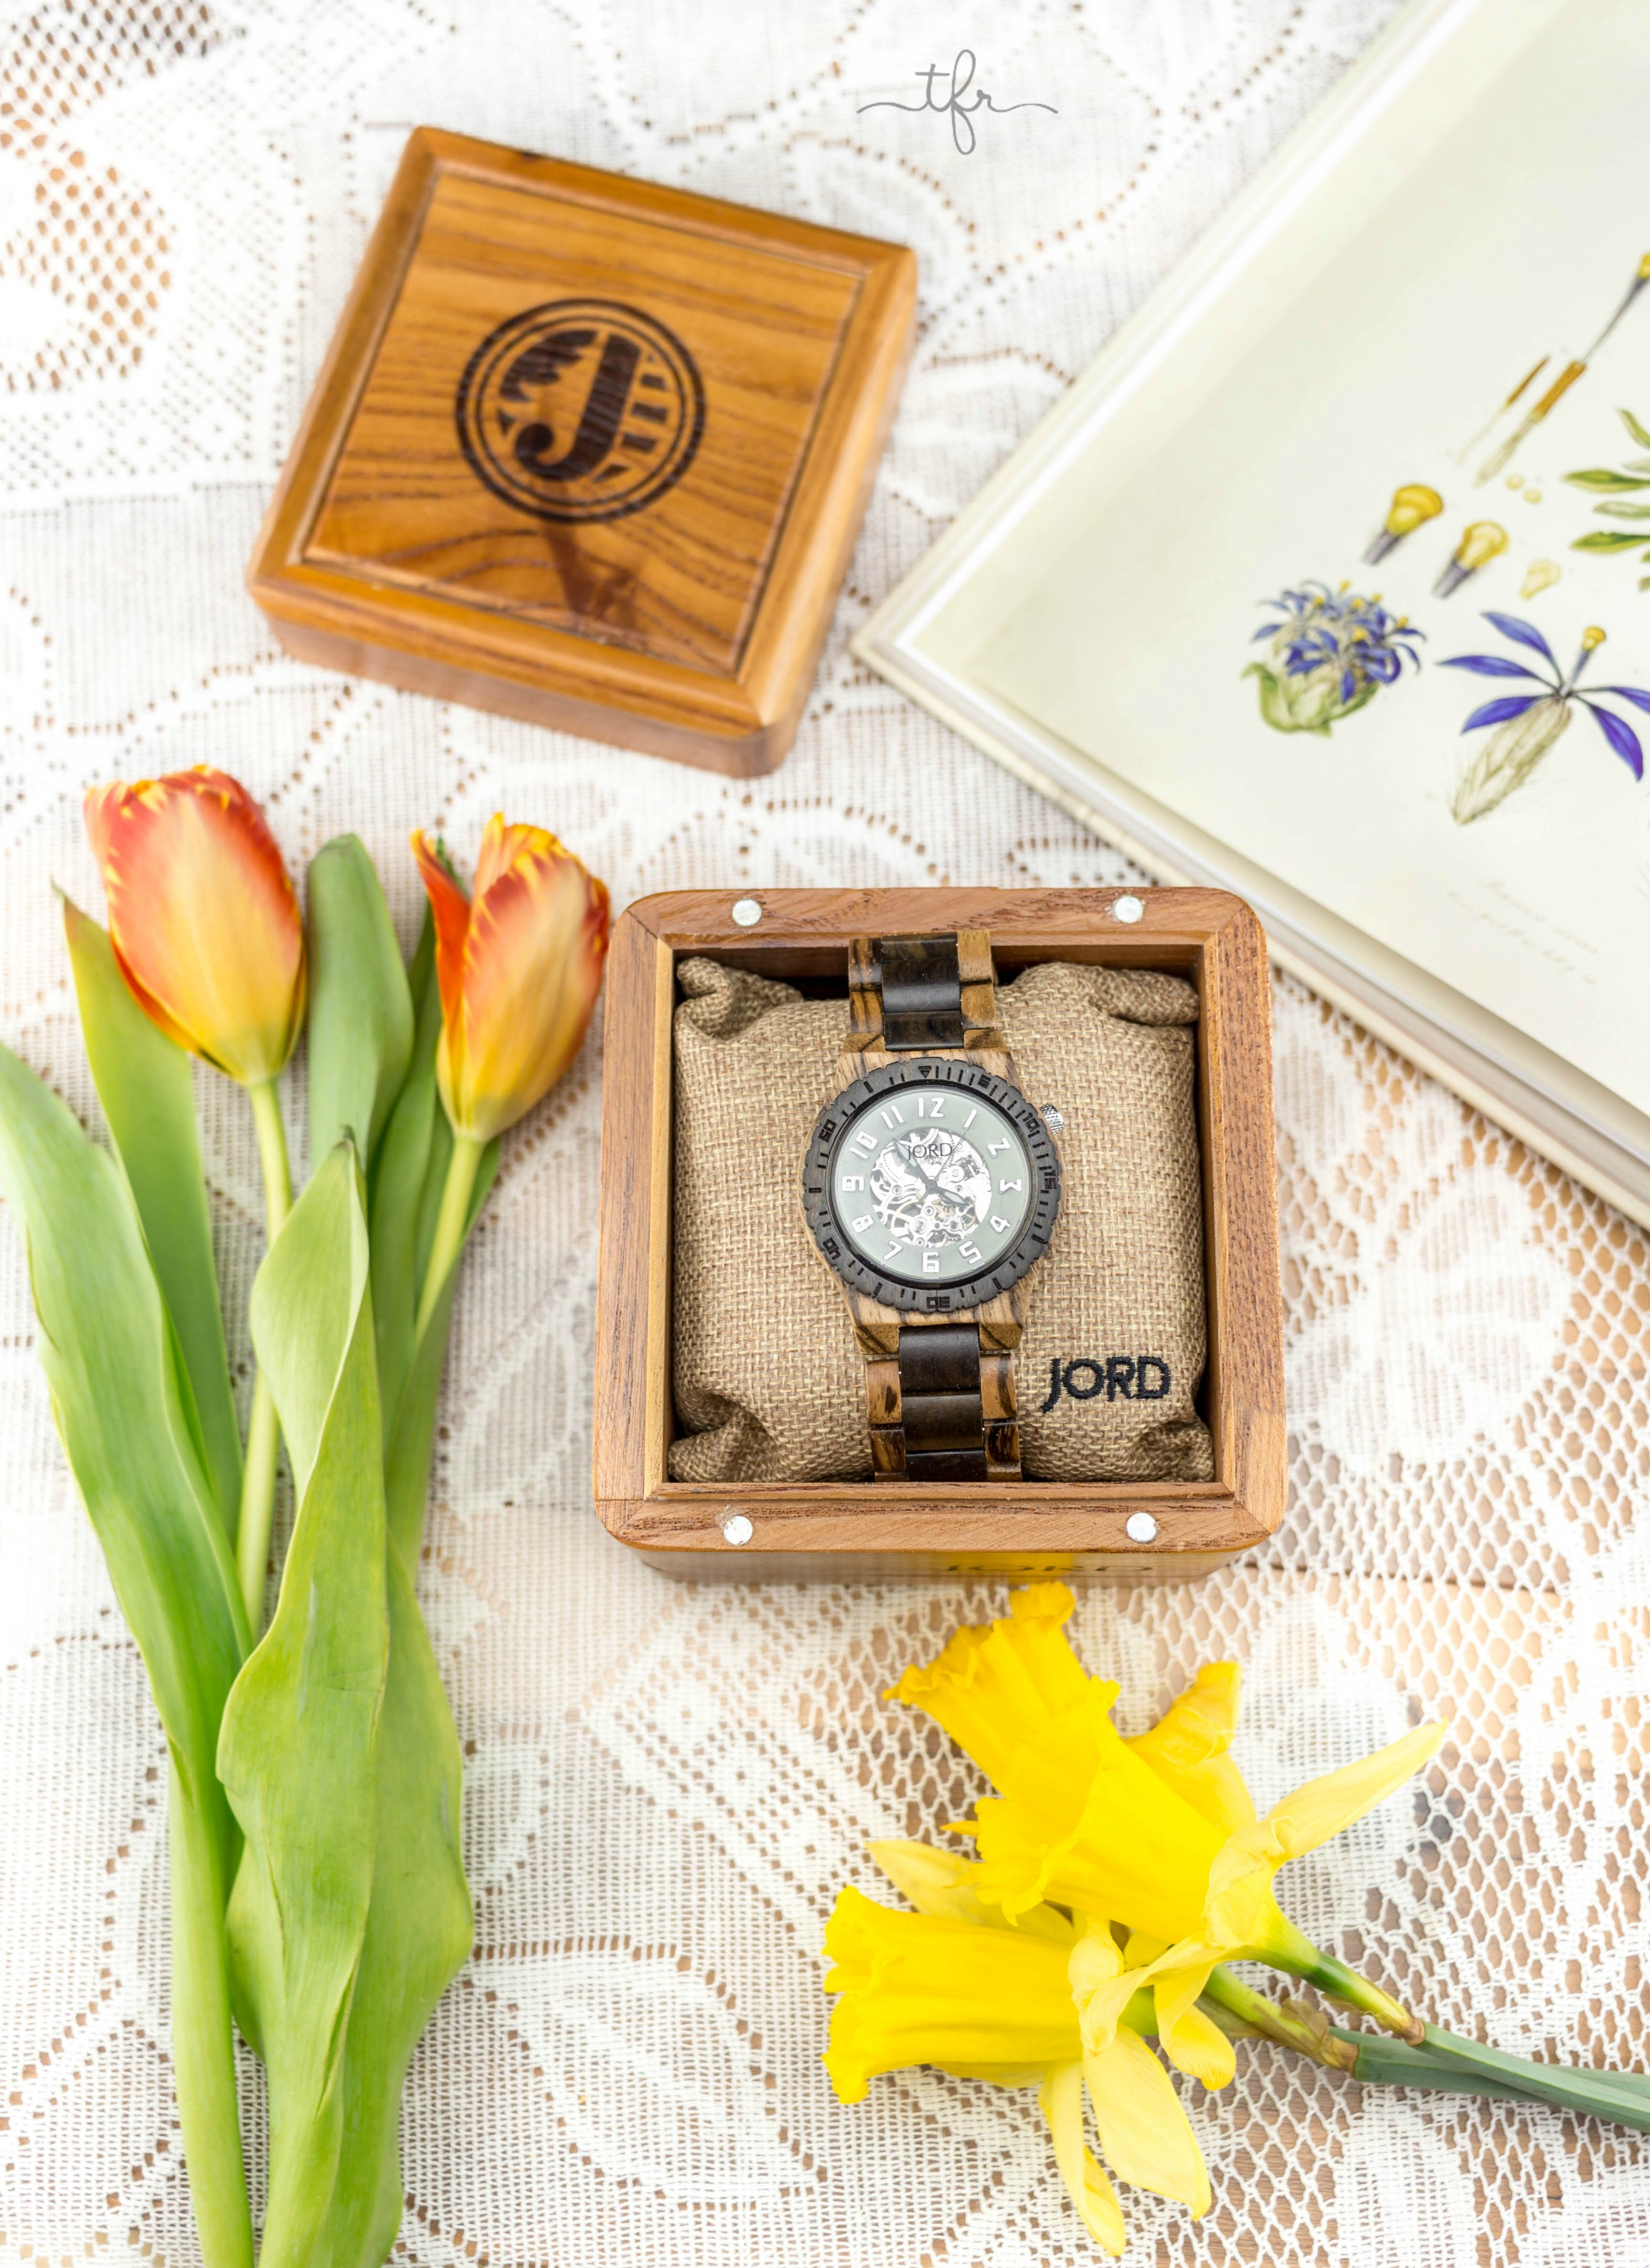 It's Finally Time for Spring! | Zebrawood and Dark Sandalwood JORD wood watch | Angie The Freckled Rose